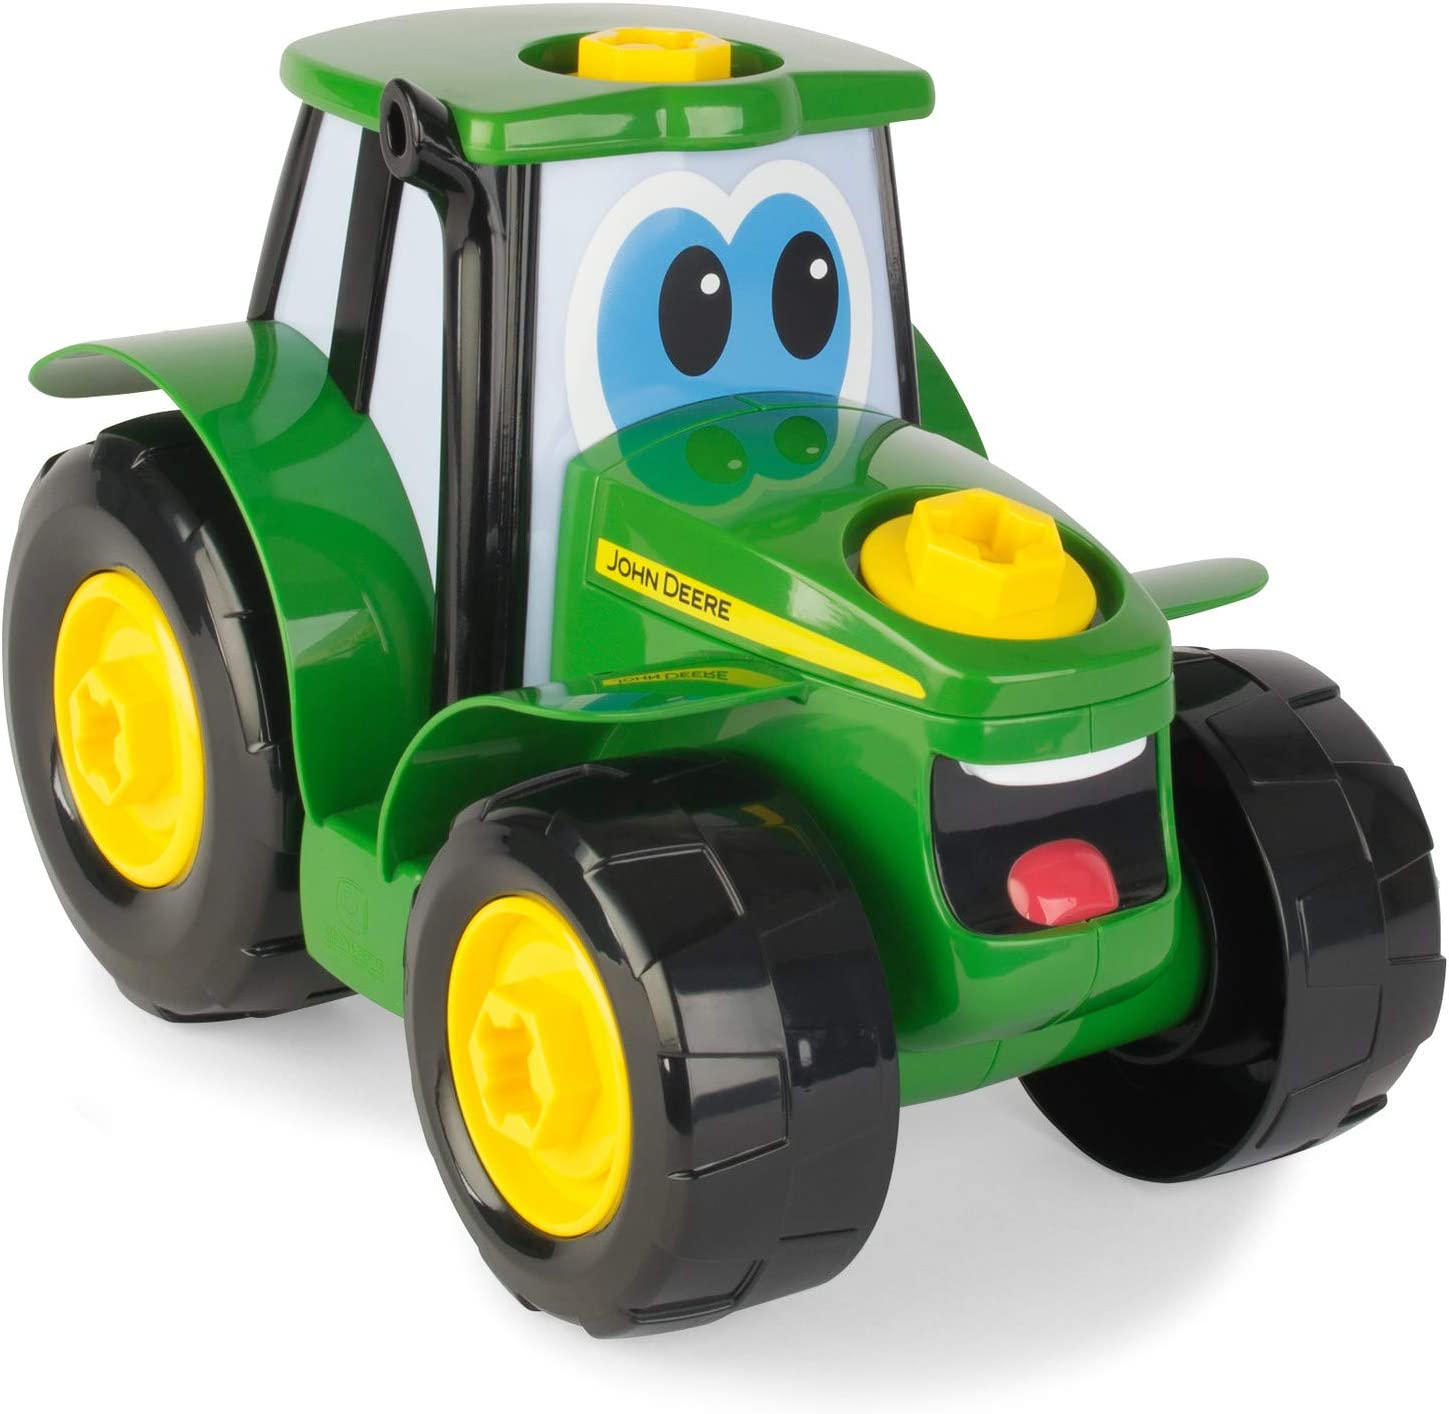 TOMY John Deere Build-A-Johnny Tractor Toy for Kids